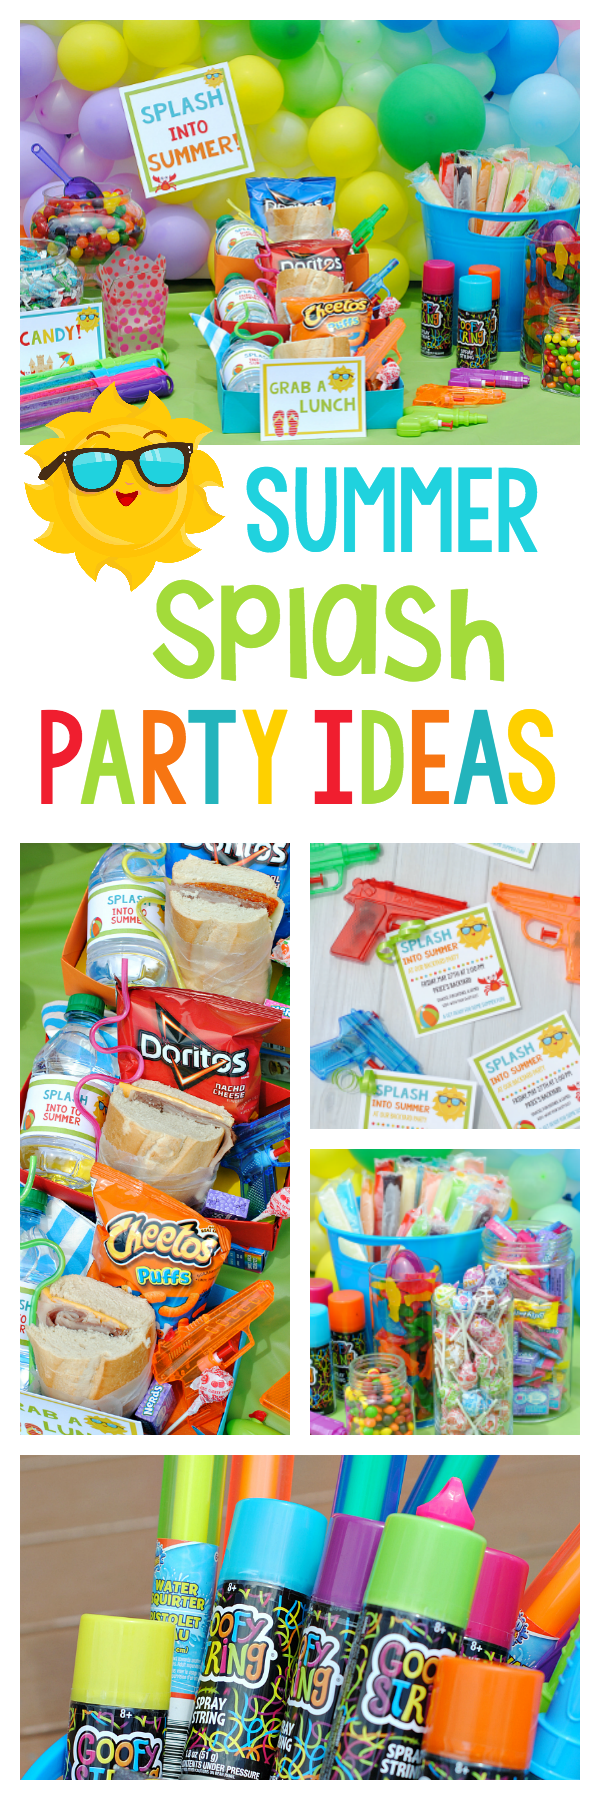 Water Party Ideas